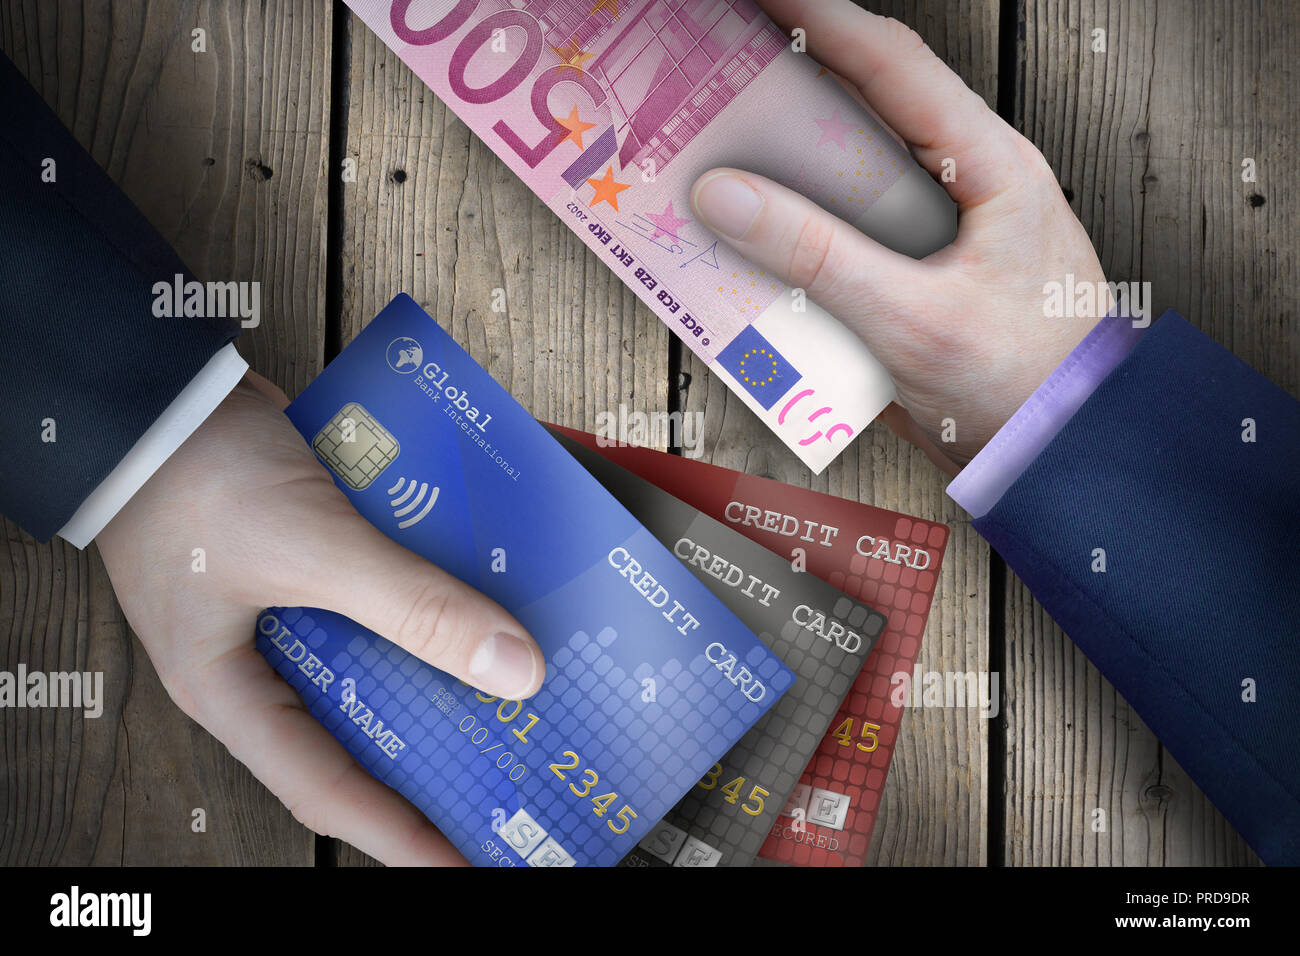 Two fiat currency bills being exchanged by two business people as part of a business transaction. - Stock Image